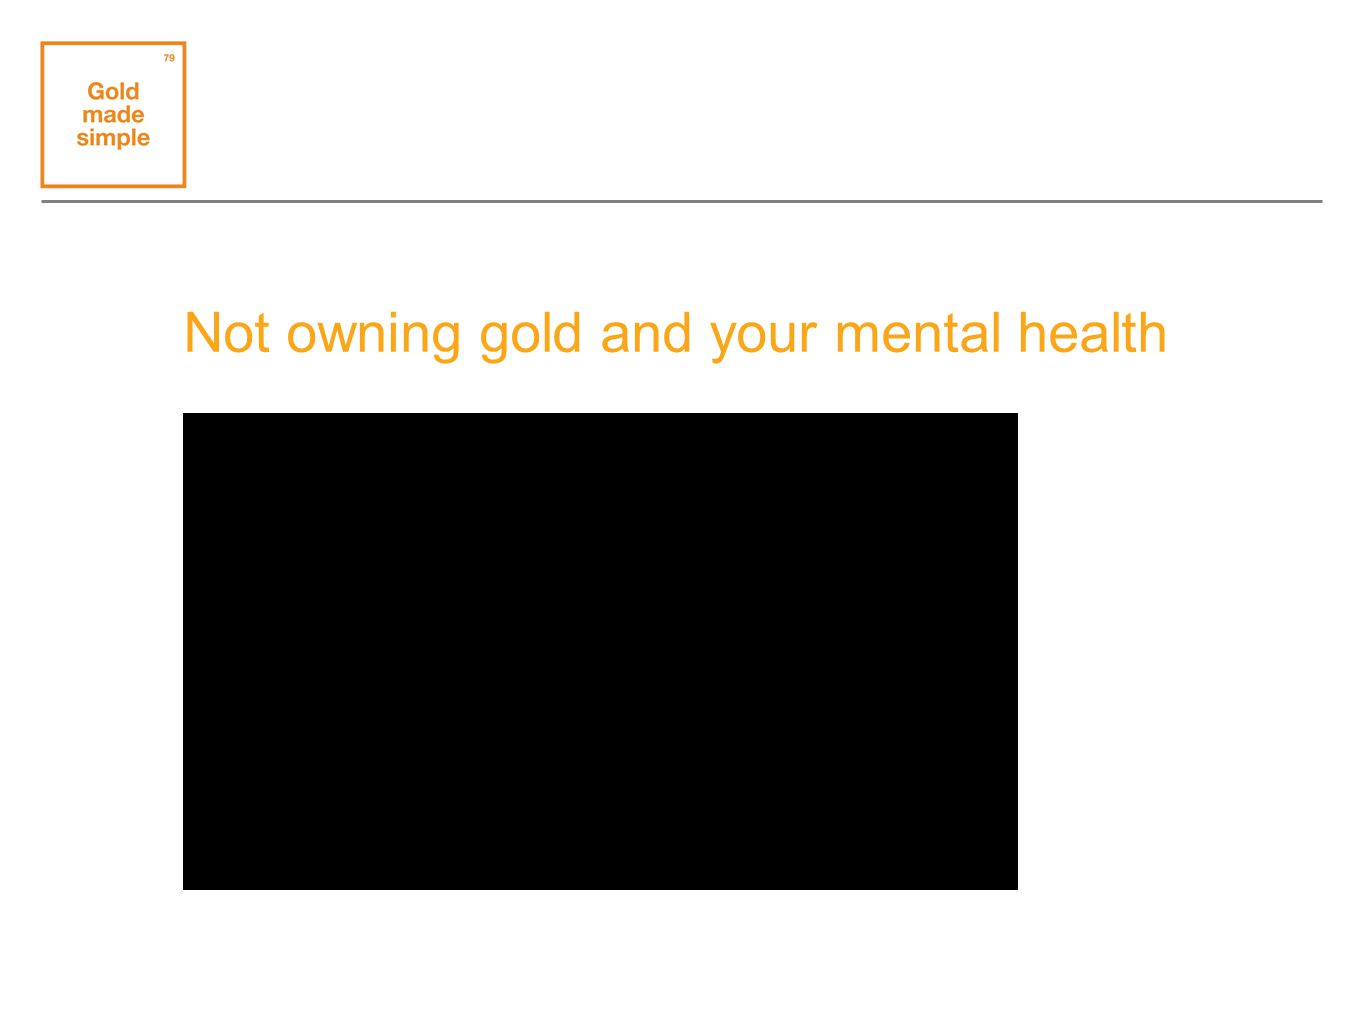 Not owning gold and your mental health